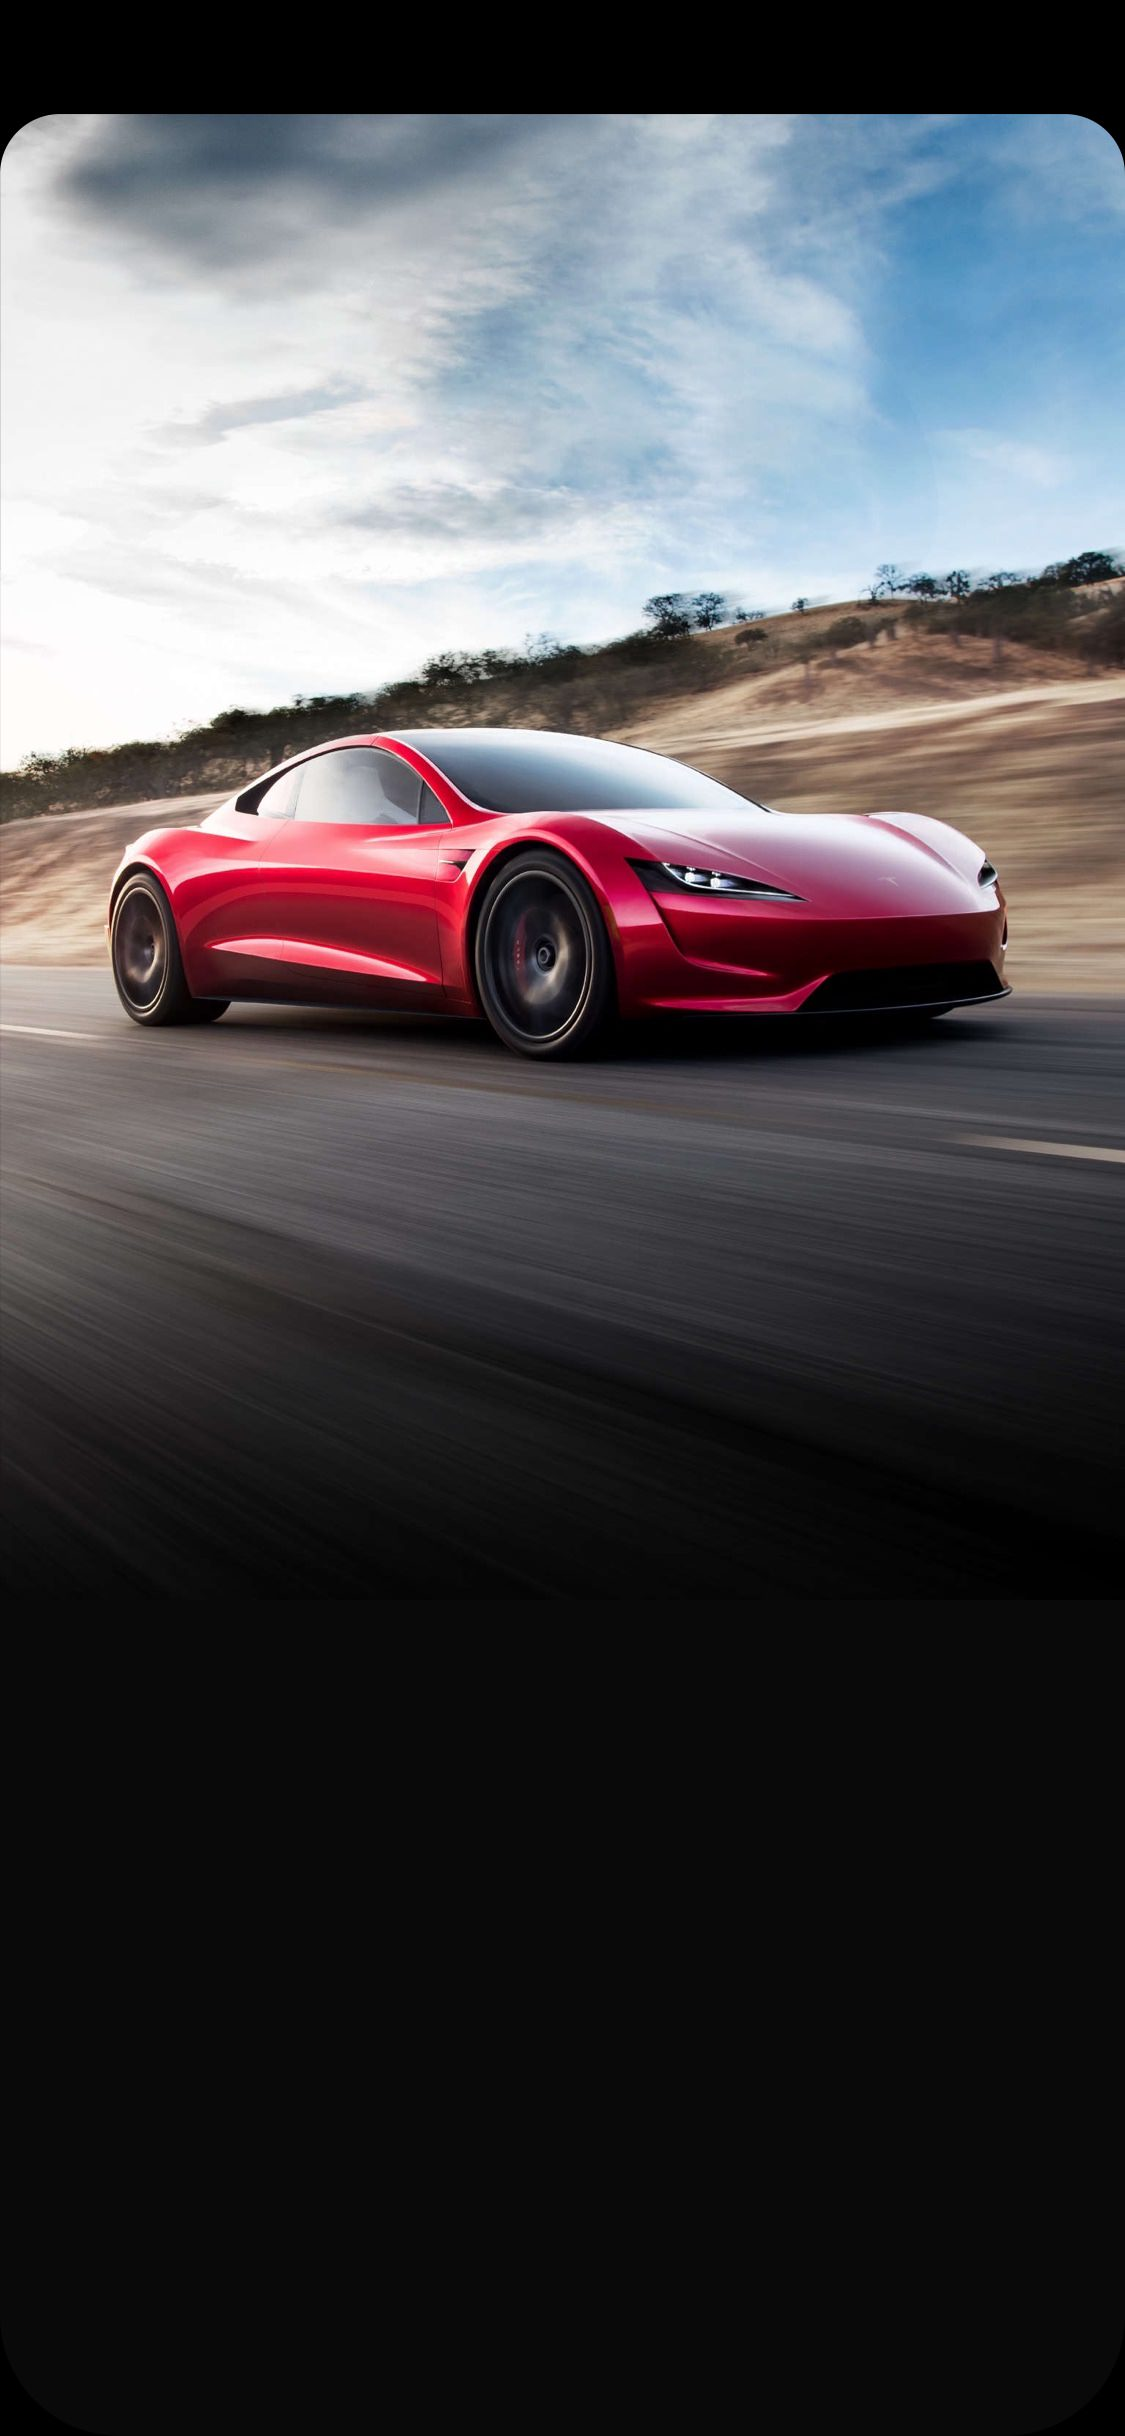 Tesla Roadster 2020 Wallpapers For iPhone X iPad And Mac   iOS Hacker 1125x2436